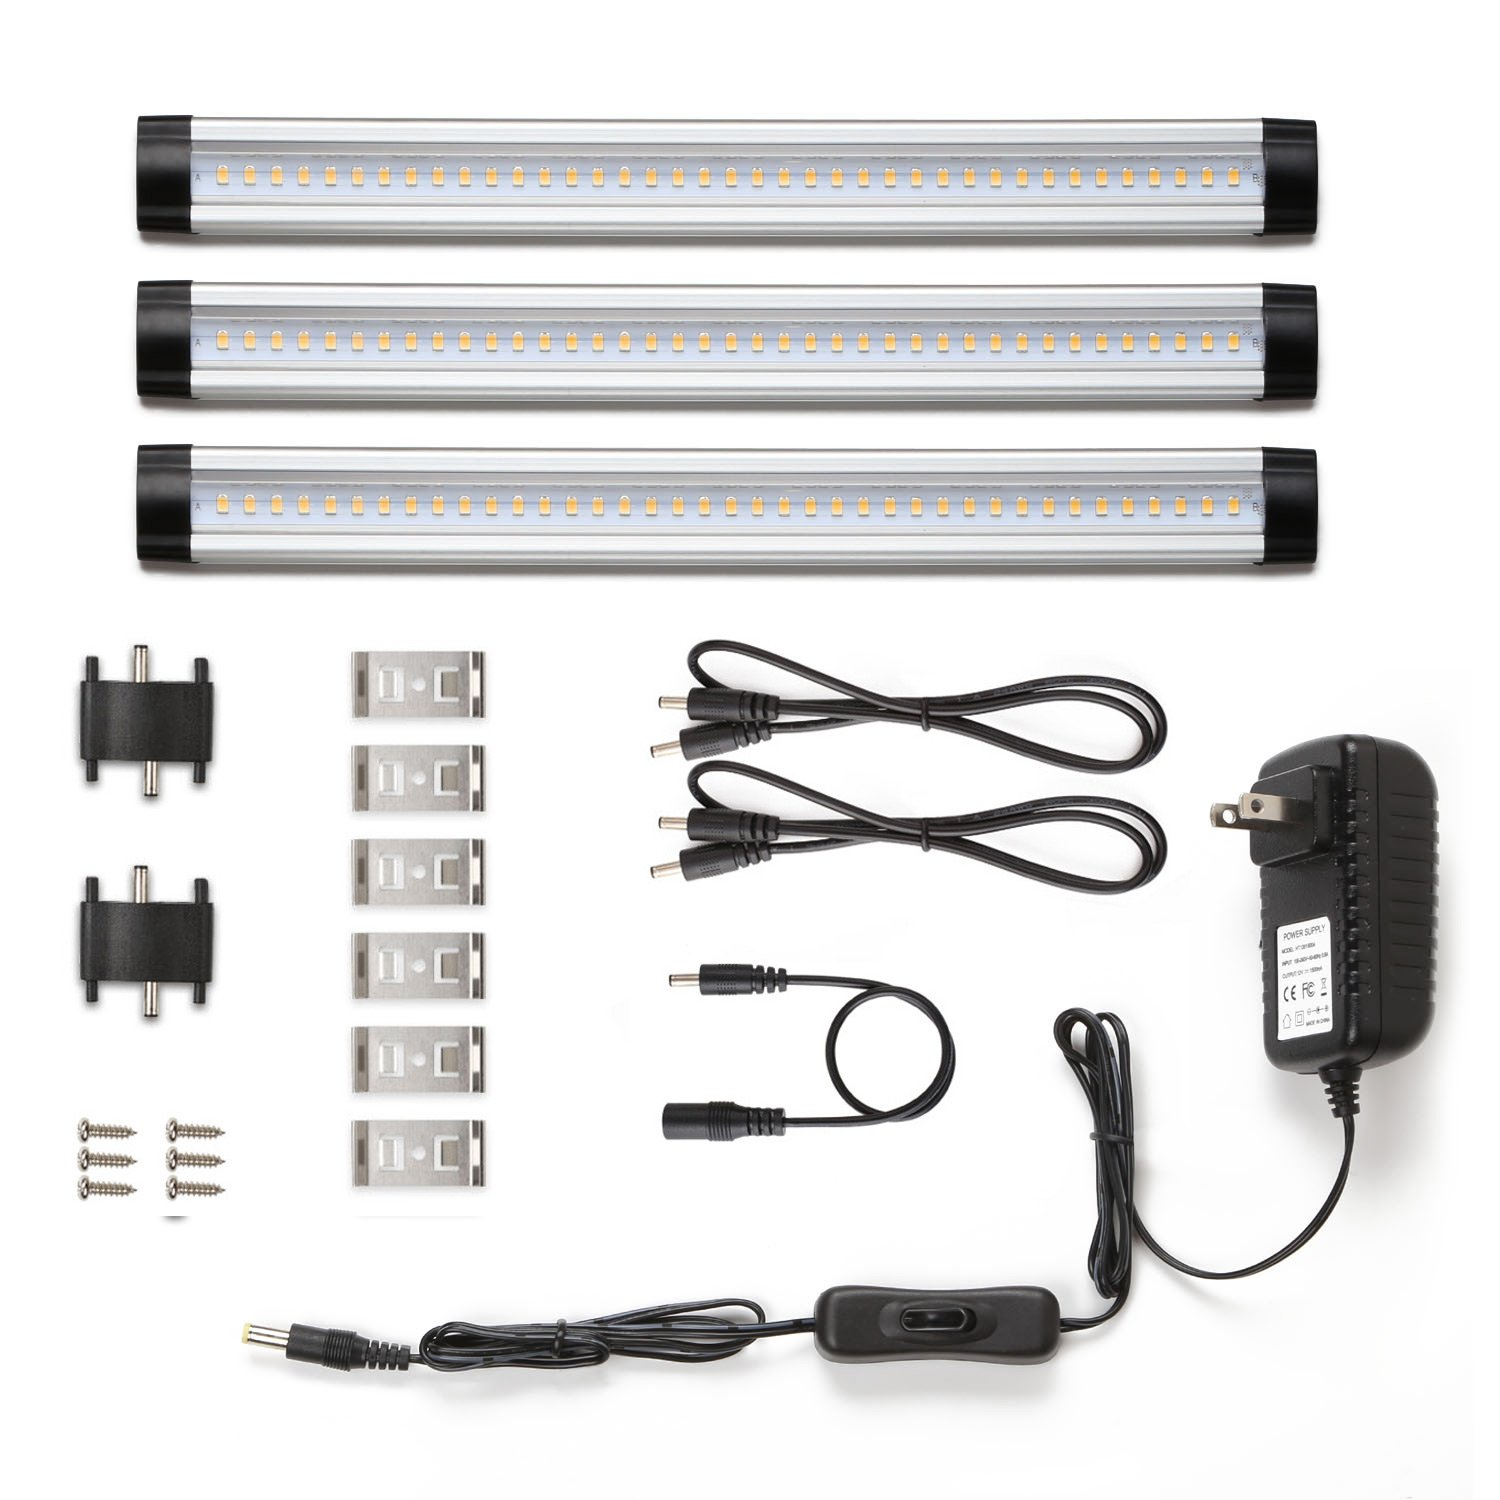 Le led under cabinet lighting warm white 900lm total of 12w 24w le led under cabinet lighting warm white 900lm total of 12w 24w fluorescent tube equivalent 3 panel kit all accessories included 12v led closet light mozeypictures Images